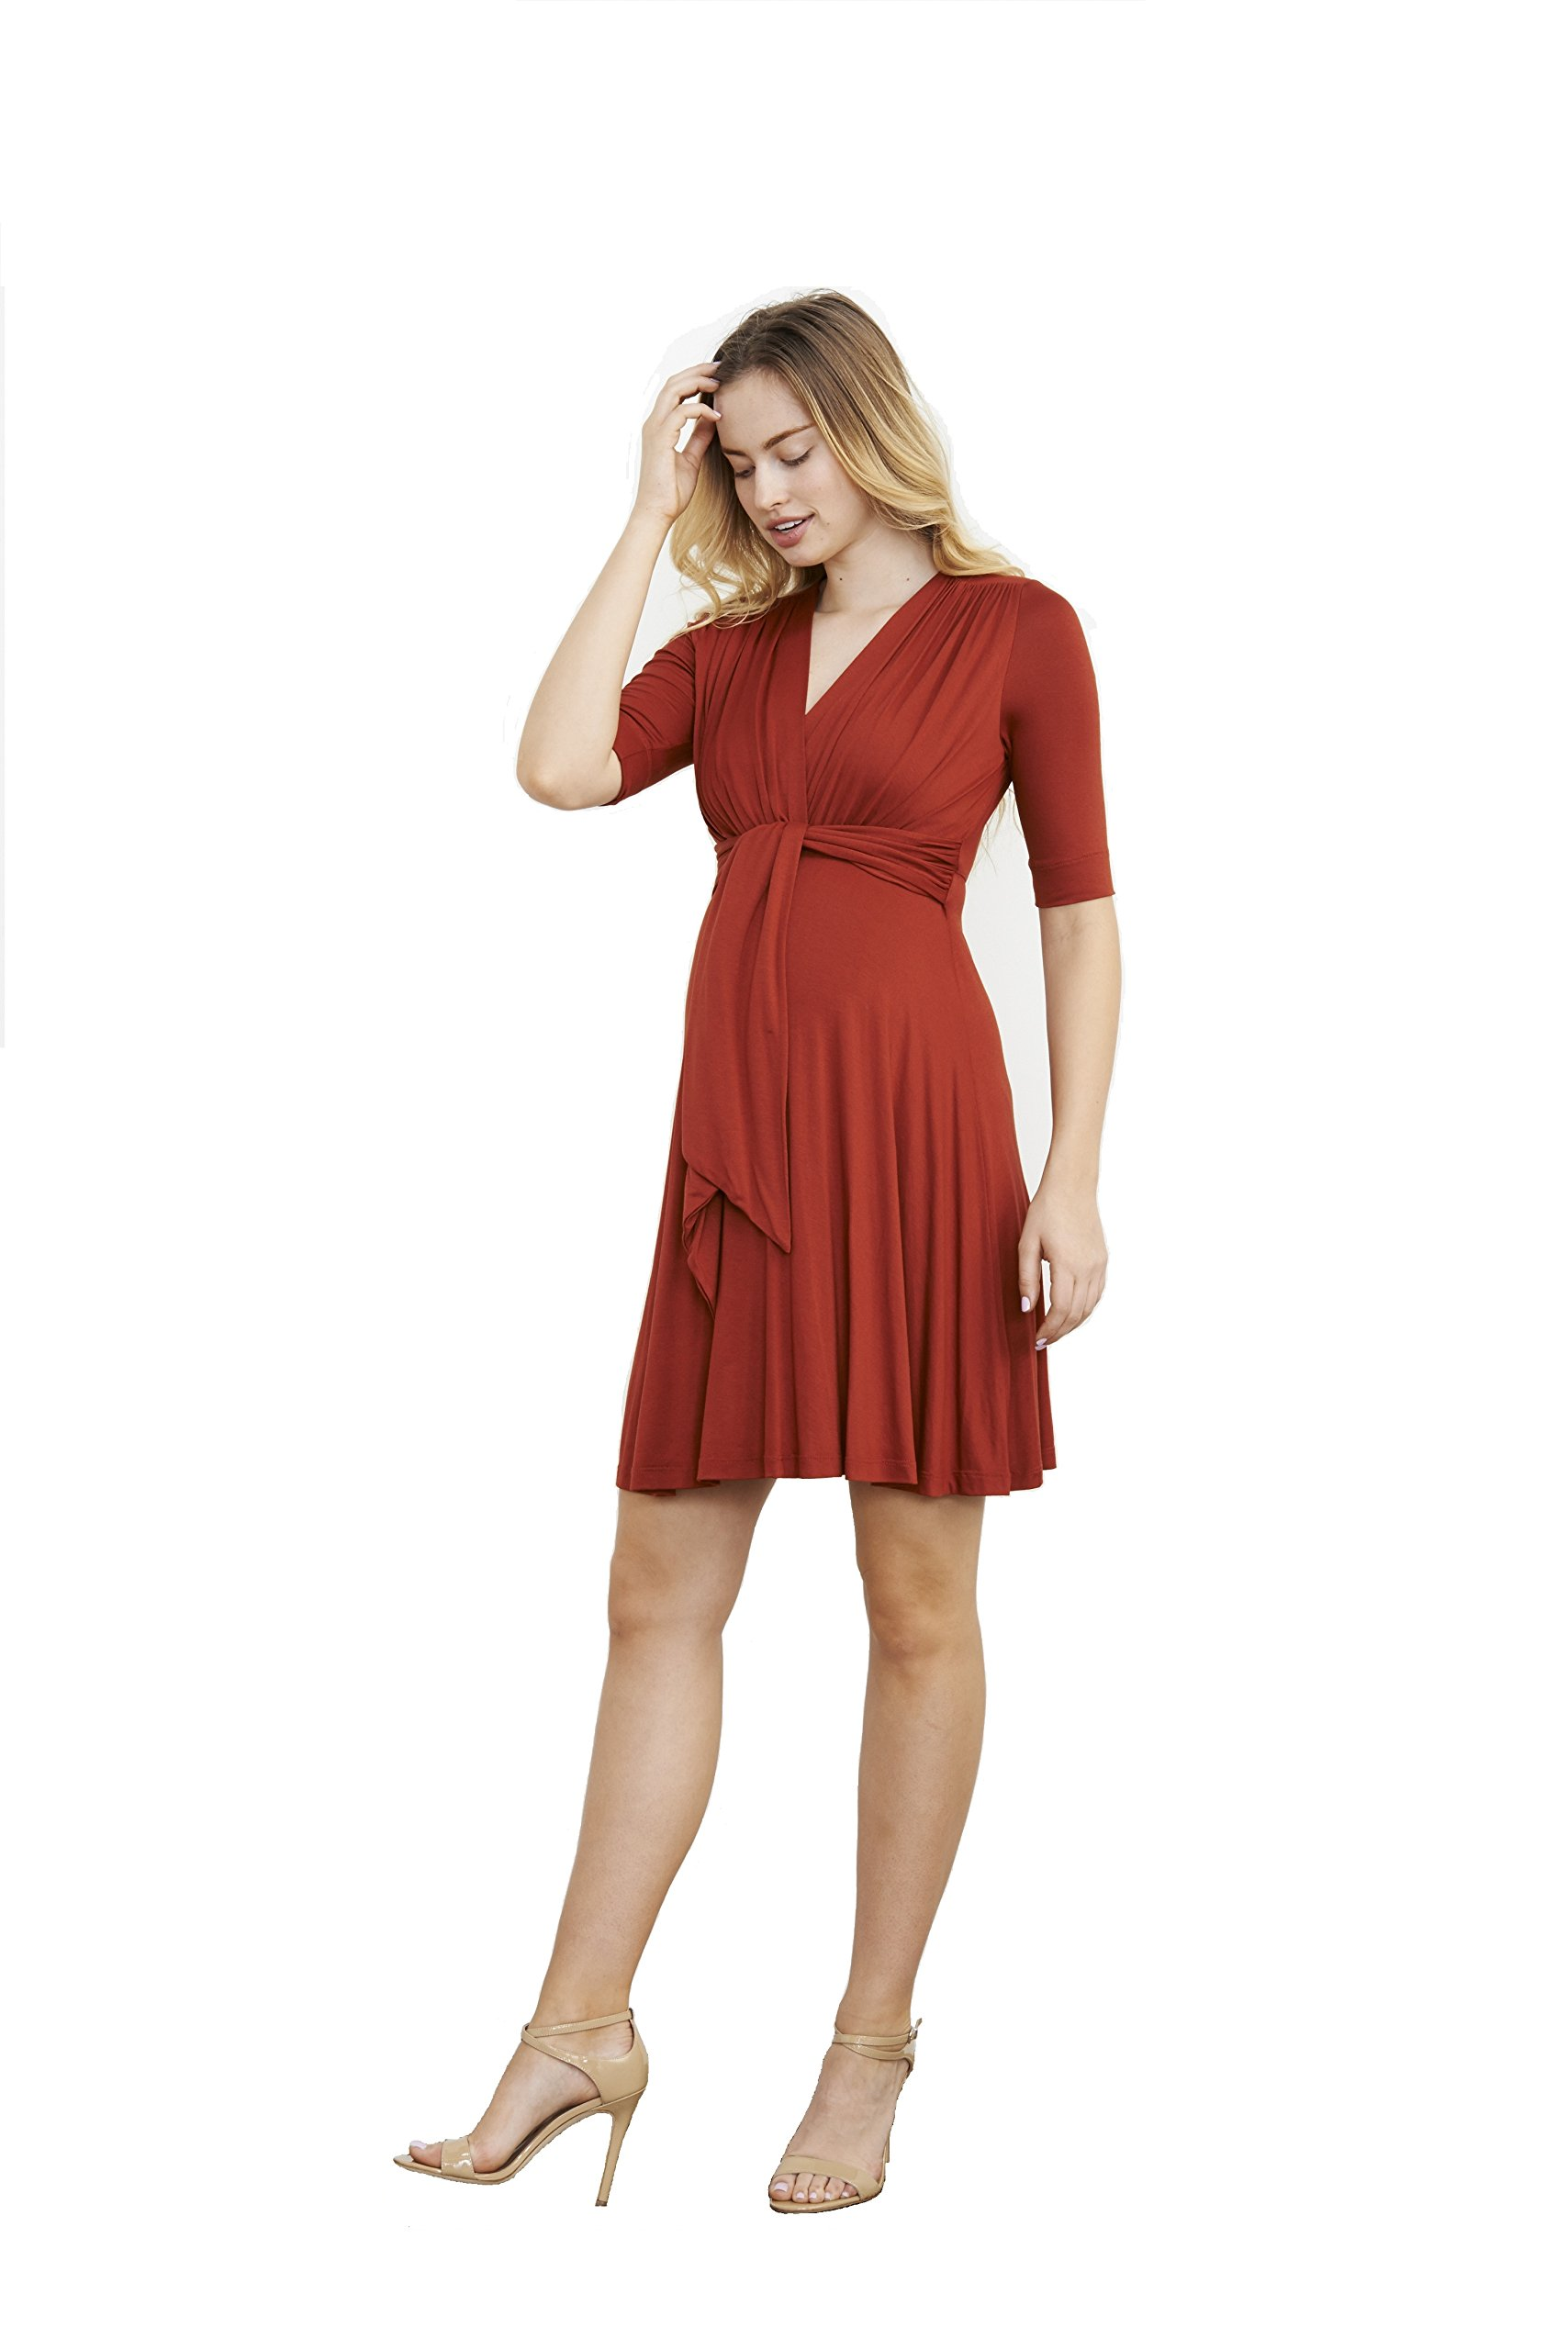 Maternal America Women's Maternity Mini Front Tie Nursing Dress, Rust, Medium by Maternal America